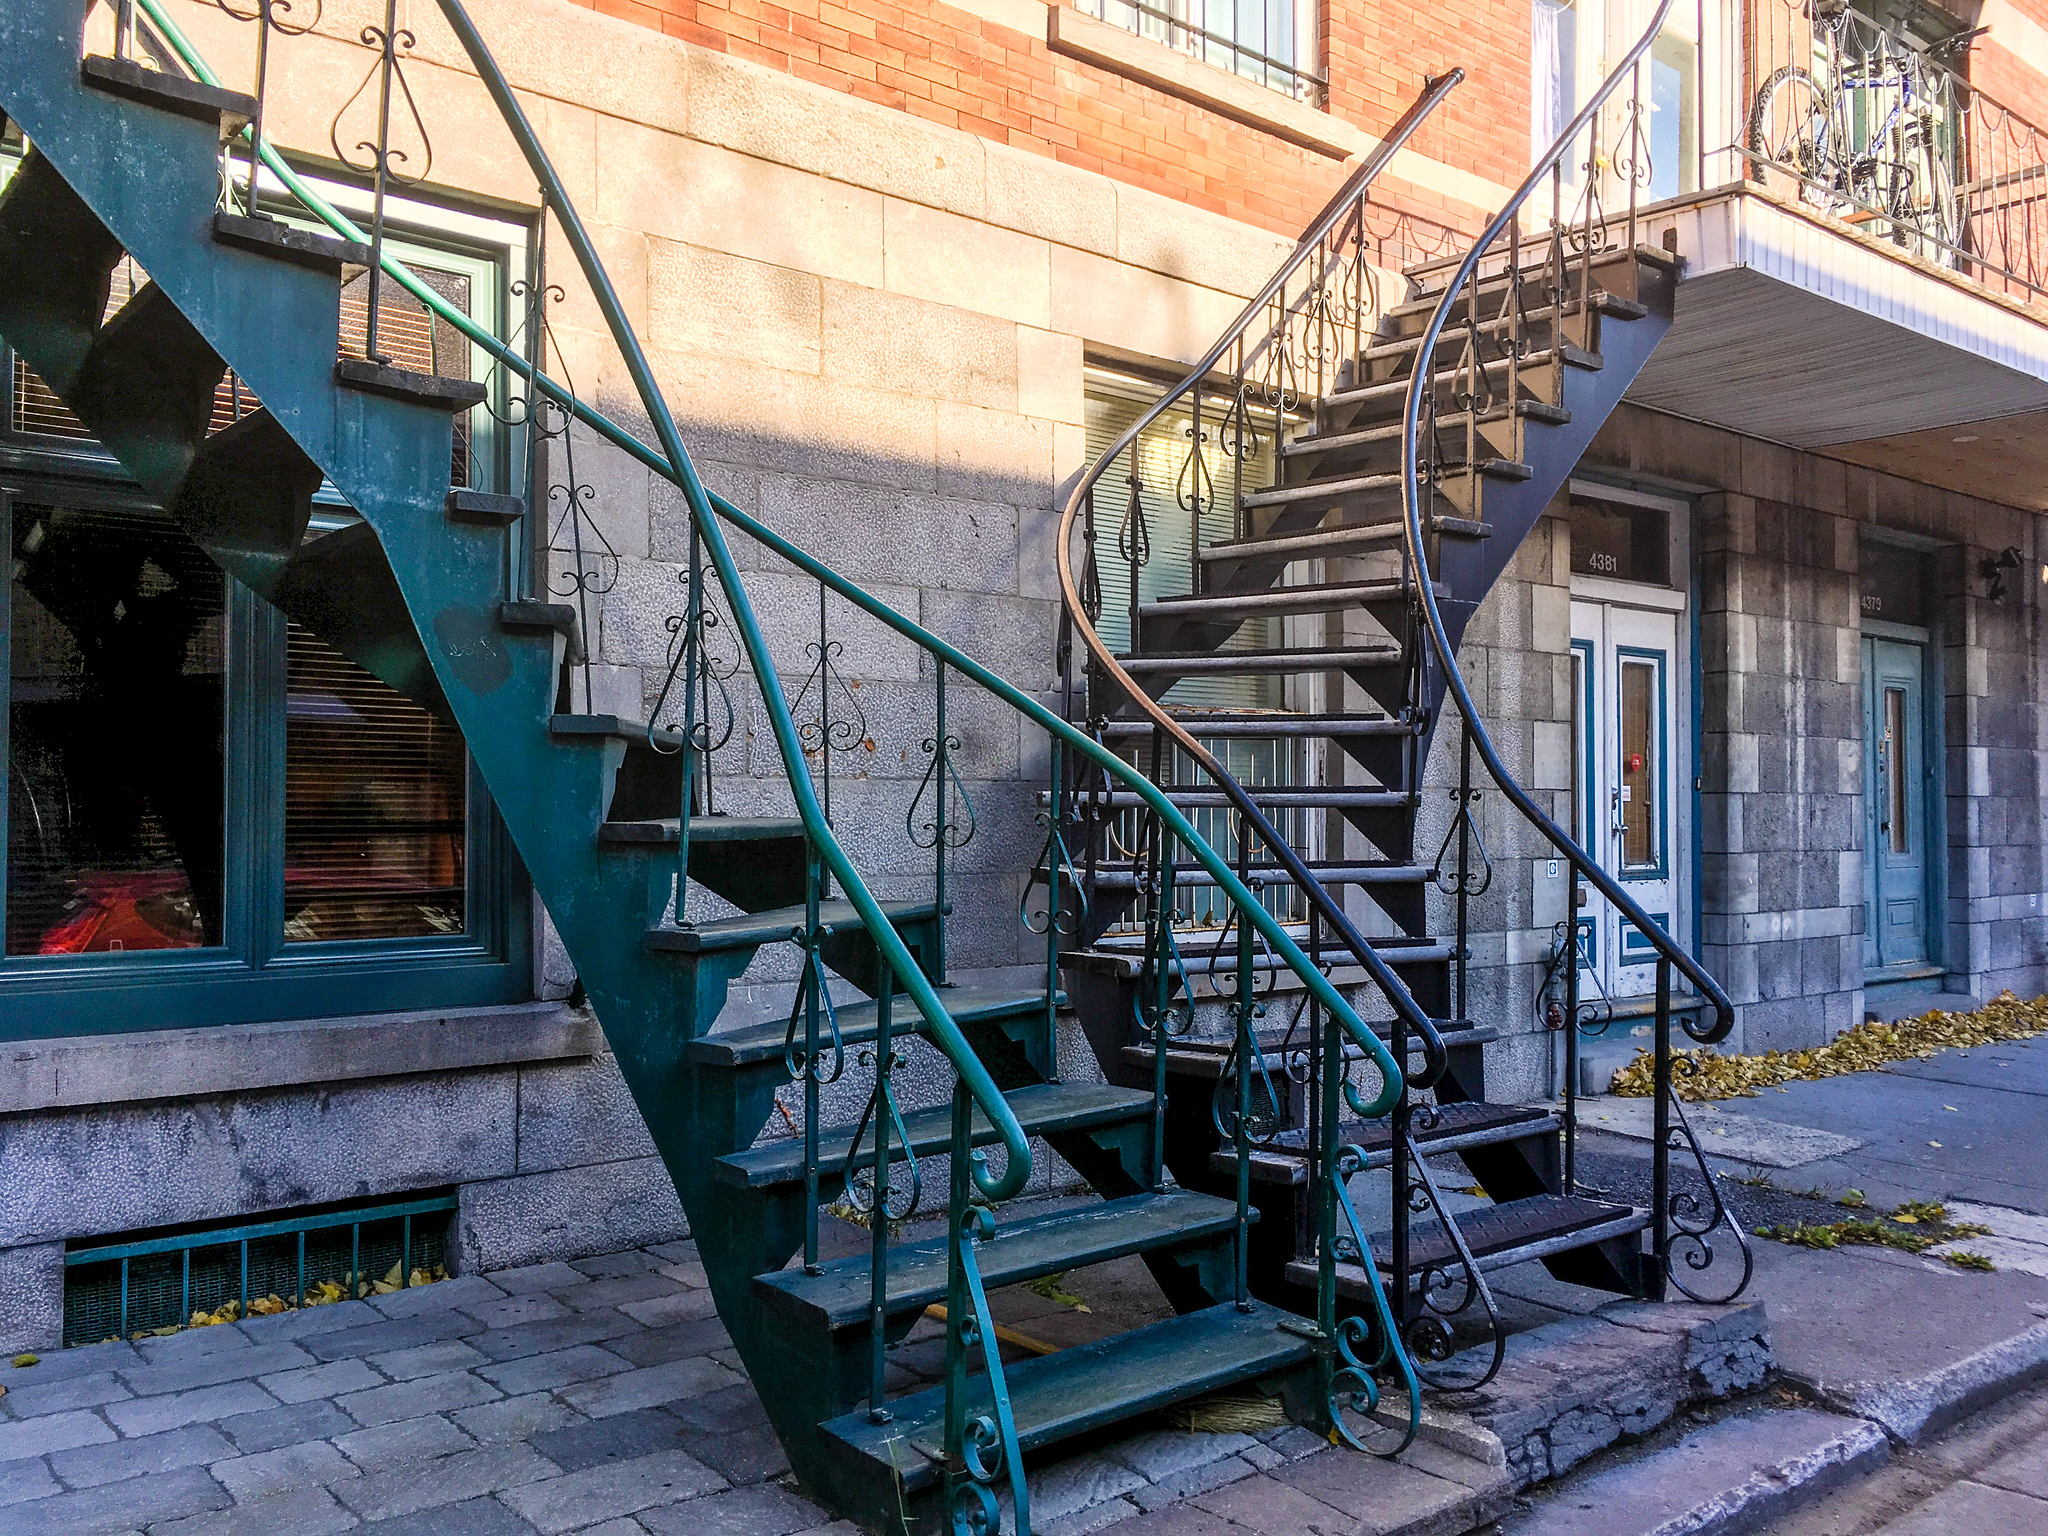 exploring alone in montreal? check out the iron staircases